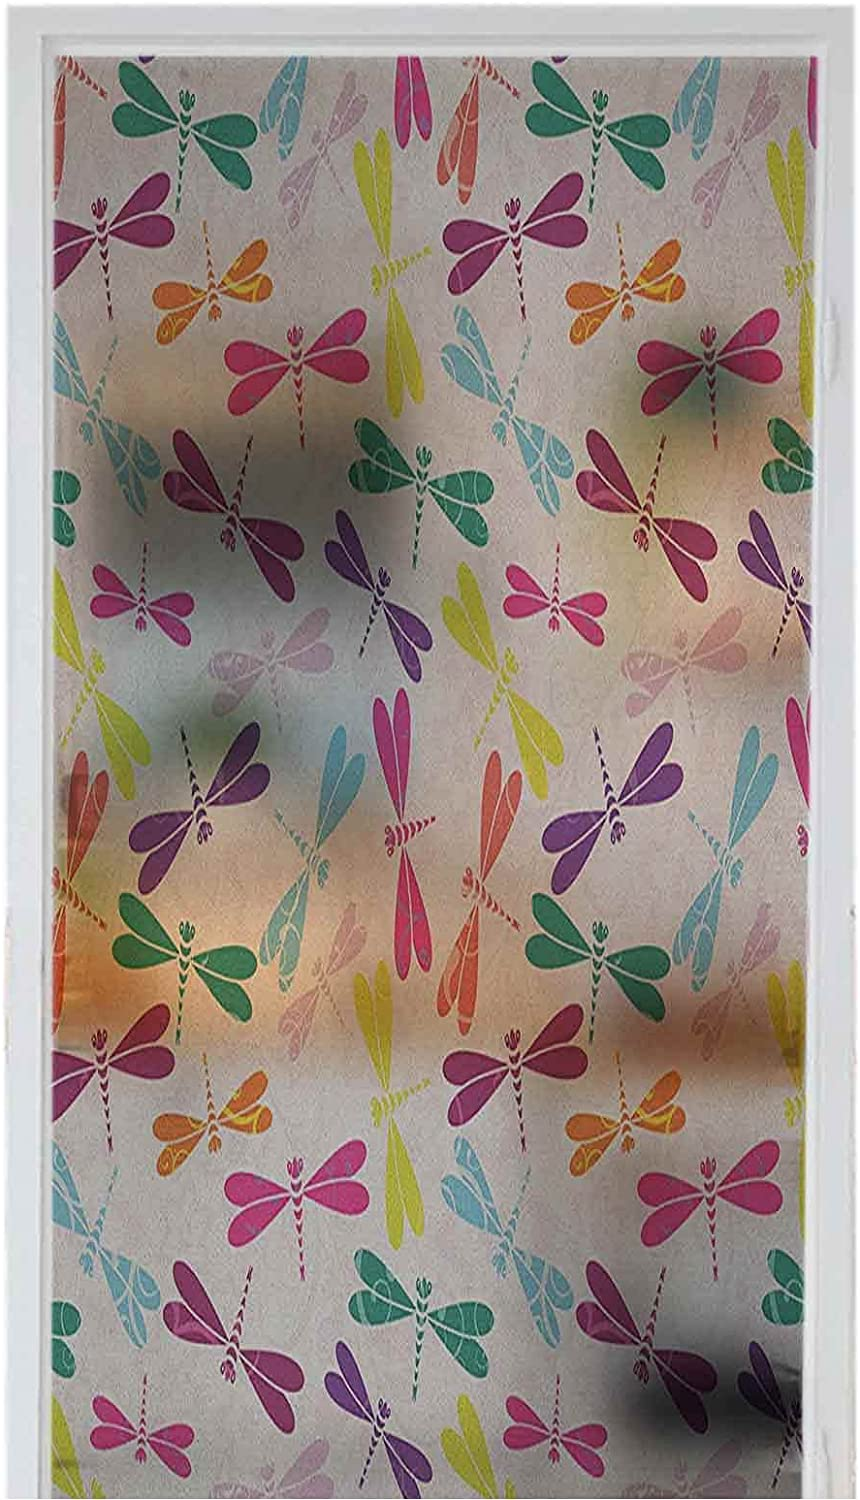 Window Film PVC Home Decoration Dragonfly Nursery Removable SEAL limited product Kids All items free shipping